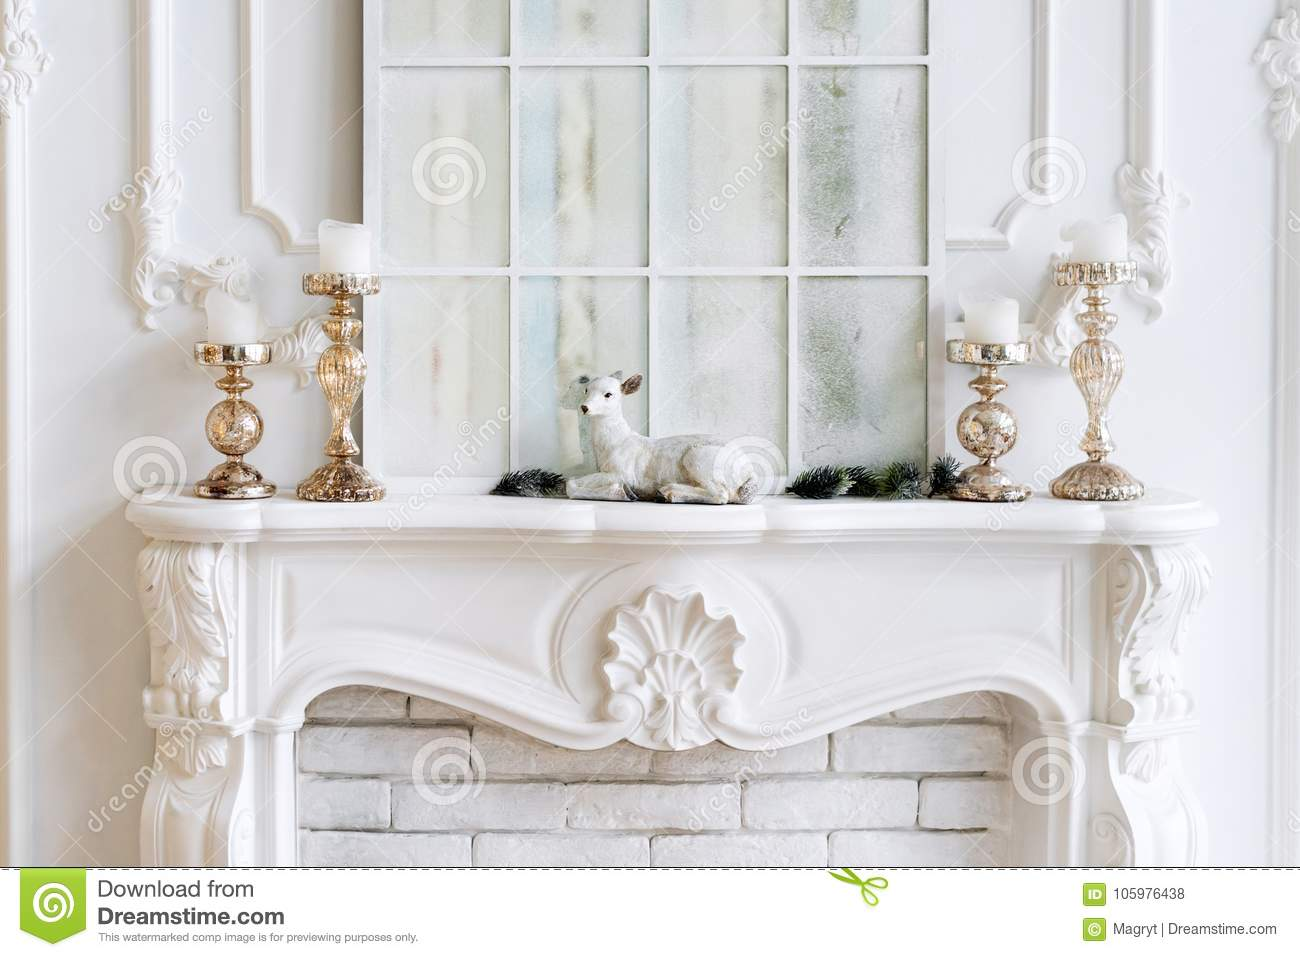 download white mantelpiece with candles and christmas decorations classic interior stock photo image